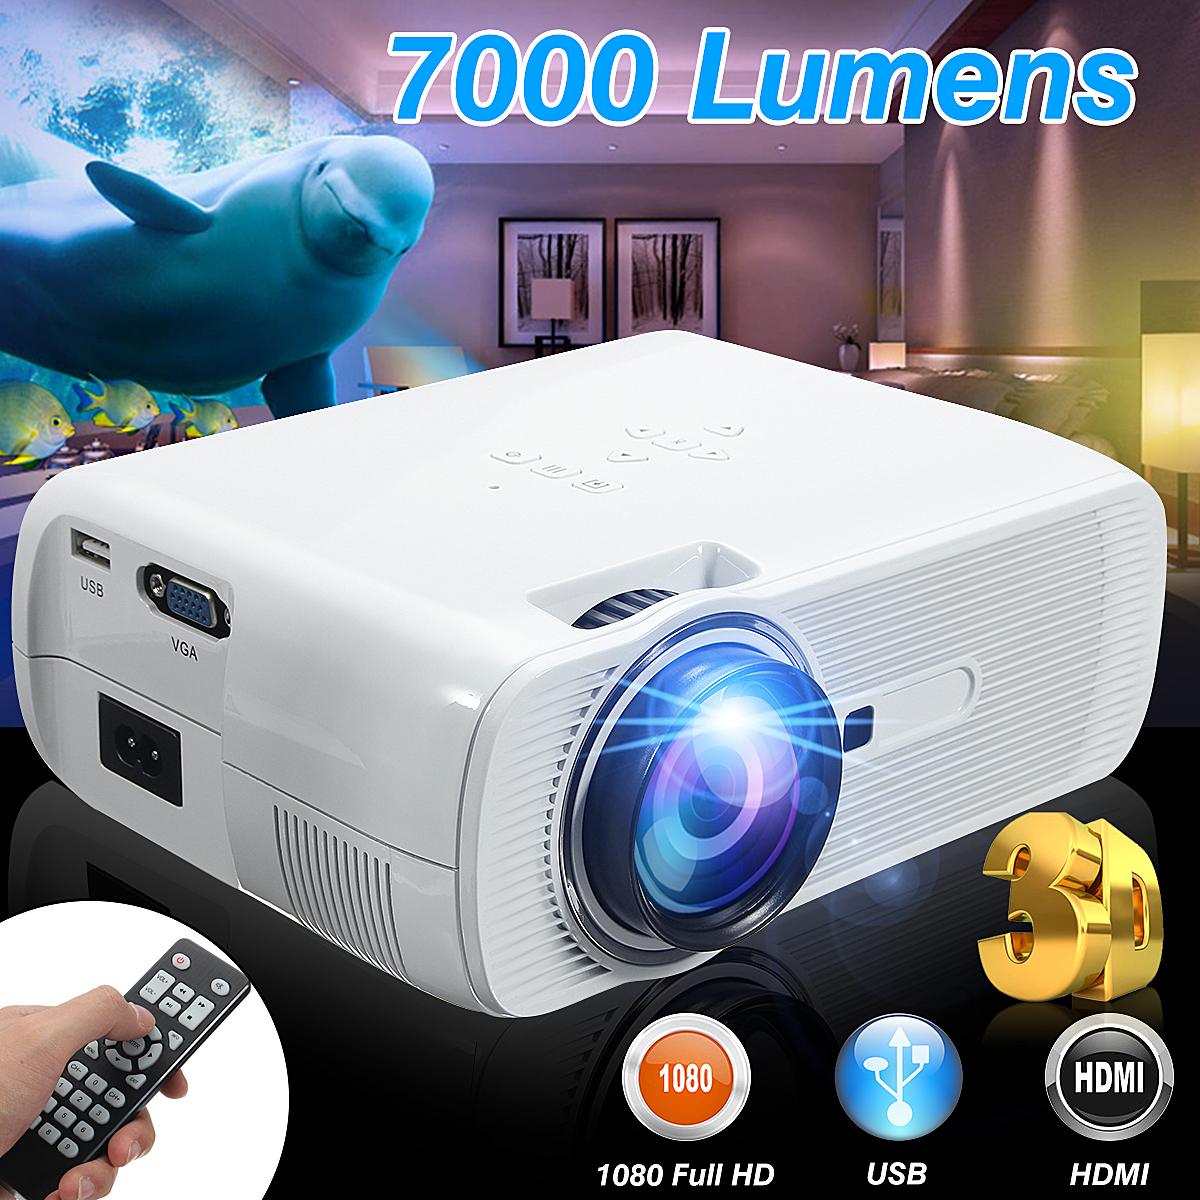 Portable Wireless 7000 Lumens Full HD LED Projector 3D Projection Home Theater Cinema LCD HDMI USB AV/VGA Multimedia Beamer oasis bse bsa gmb vgb 500 80 8 секций